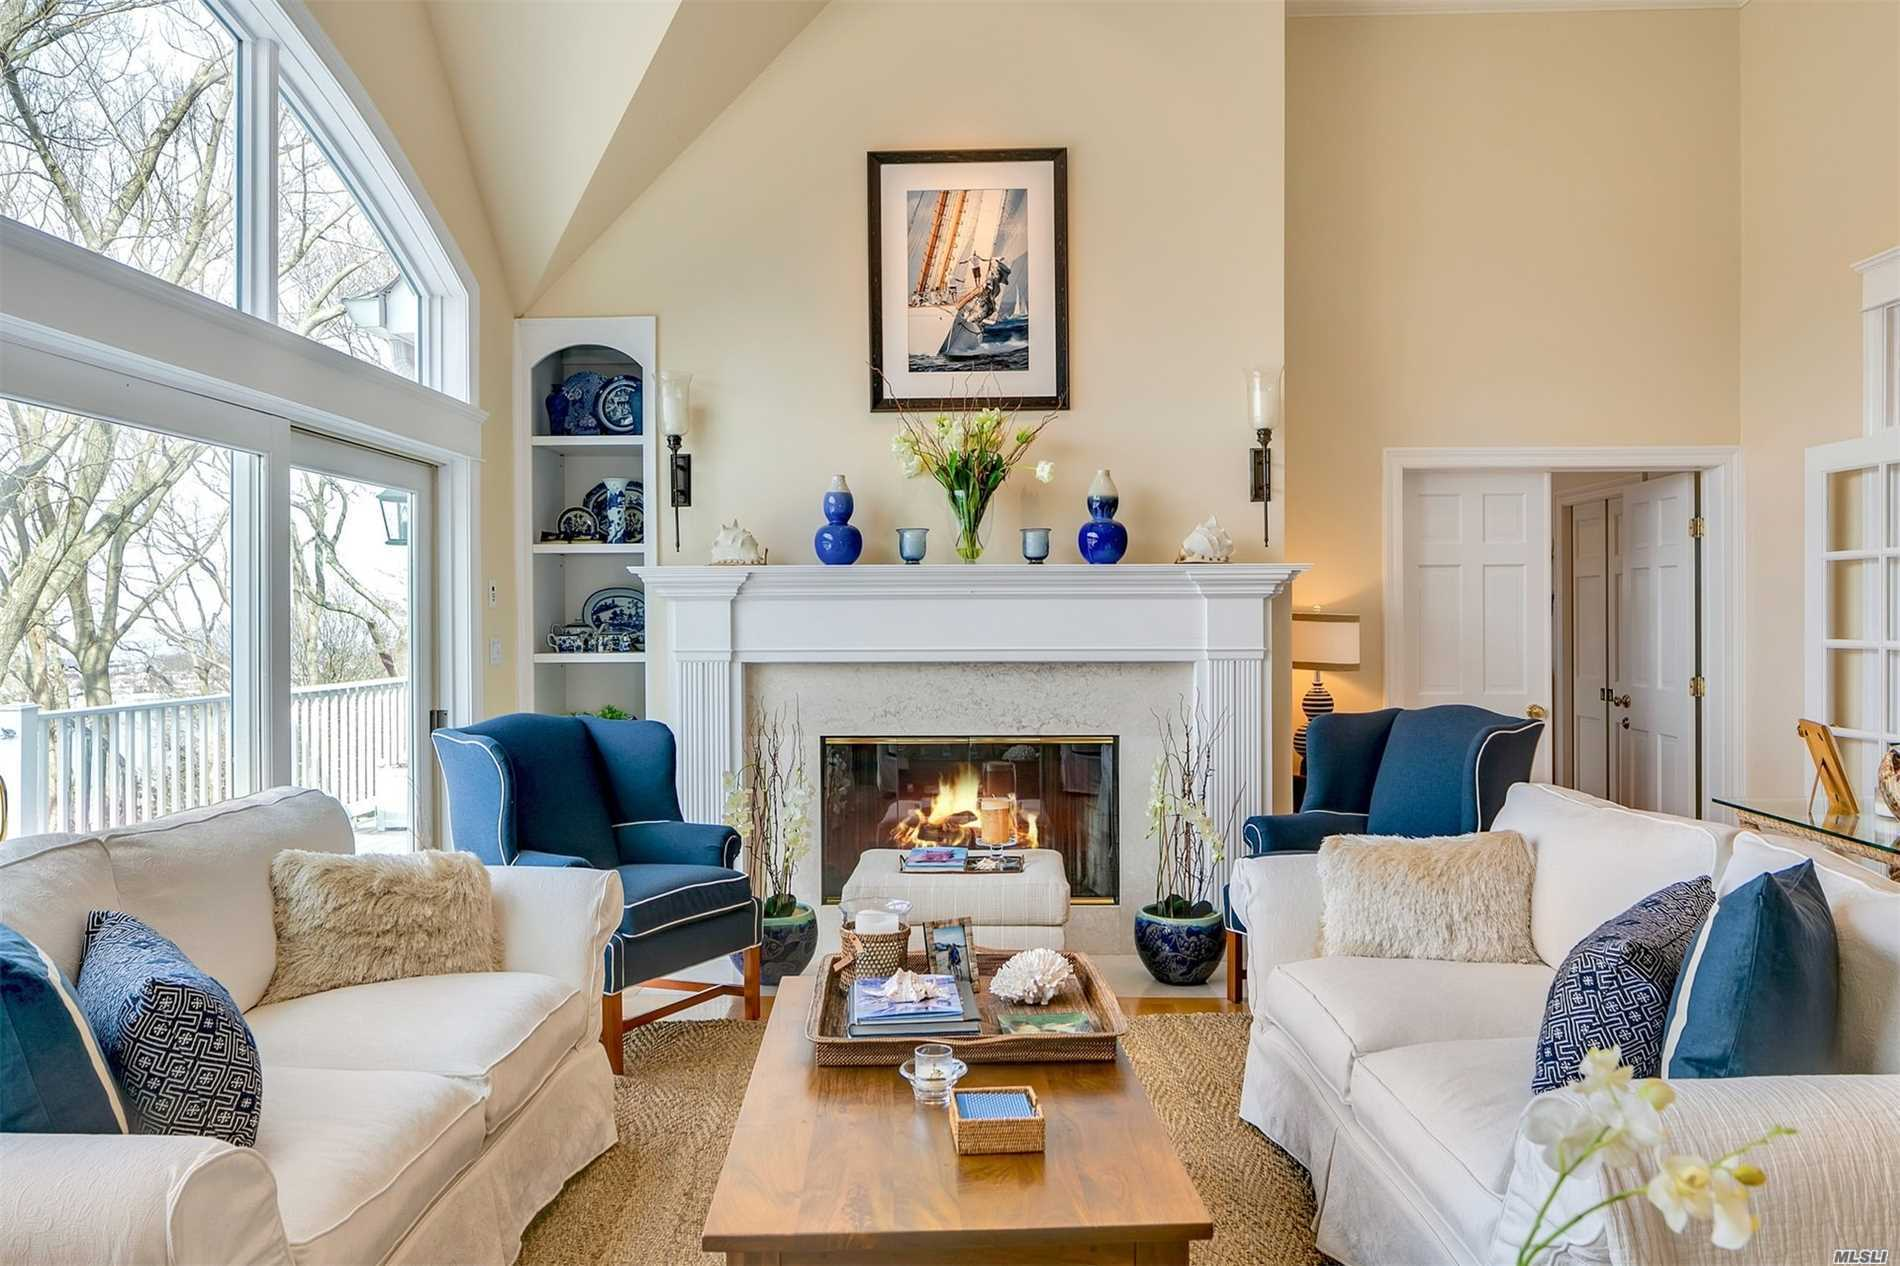 Set On .25 Acre Of Landscaped Property W//Spectacular Waterviews Of Mill Neck Bay And Connecticut. A Picture Perfect, Sun-Light Home Boasts 4 Bdrm, 3.5 Bath. Updated Kitchen W/Sliders Leading To Deck, French Doors Leads Into Lr W/Fpl And Soaring Ceilings, Master Ste on First Fl. W/Fpl , Plantation Shutters, Fans, Vaulted Ceiling W/Wic, 2nd Fl Has Large Bdrm/Office With Storage Room, Lower Level Has 2 Bdrm W/Full Bath, Den, Ose. Enjoy Sunsets, Kayaking, Etc. Turn-Key, Low Taxes